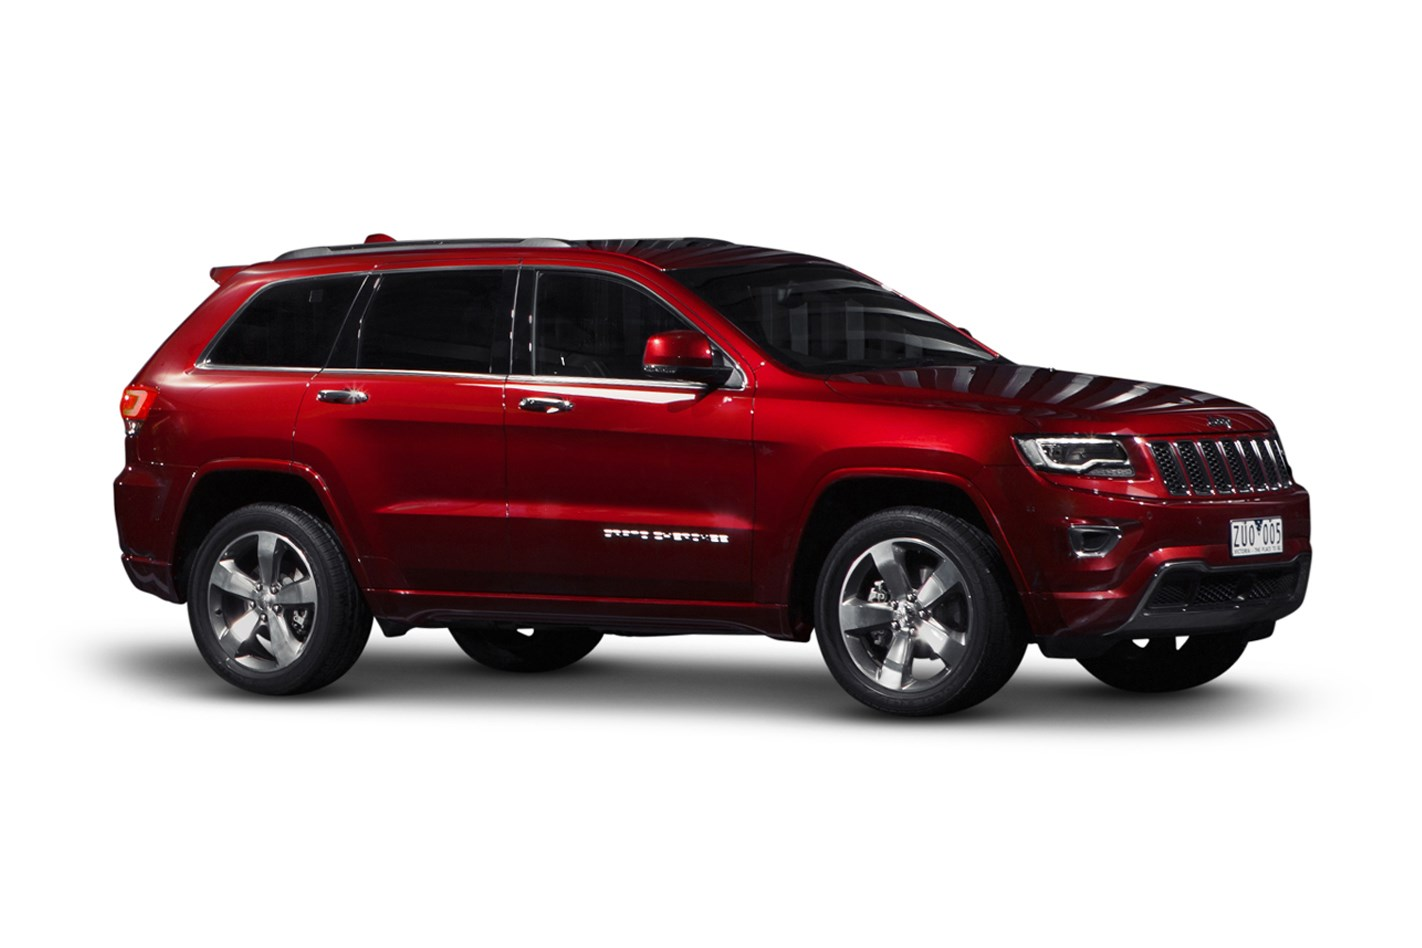 100 jeep grand cherokee laredo 2016 grand cherokee for sale cars and vehicles wenatchee. Black Bedroom Furniture Sets. Home Design Ideas